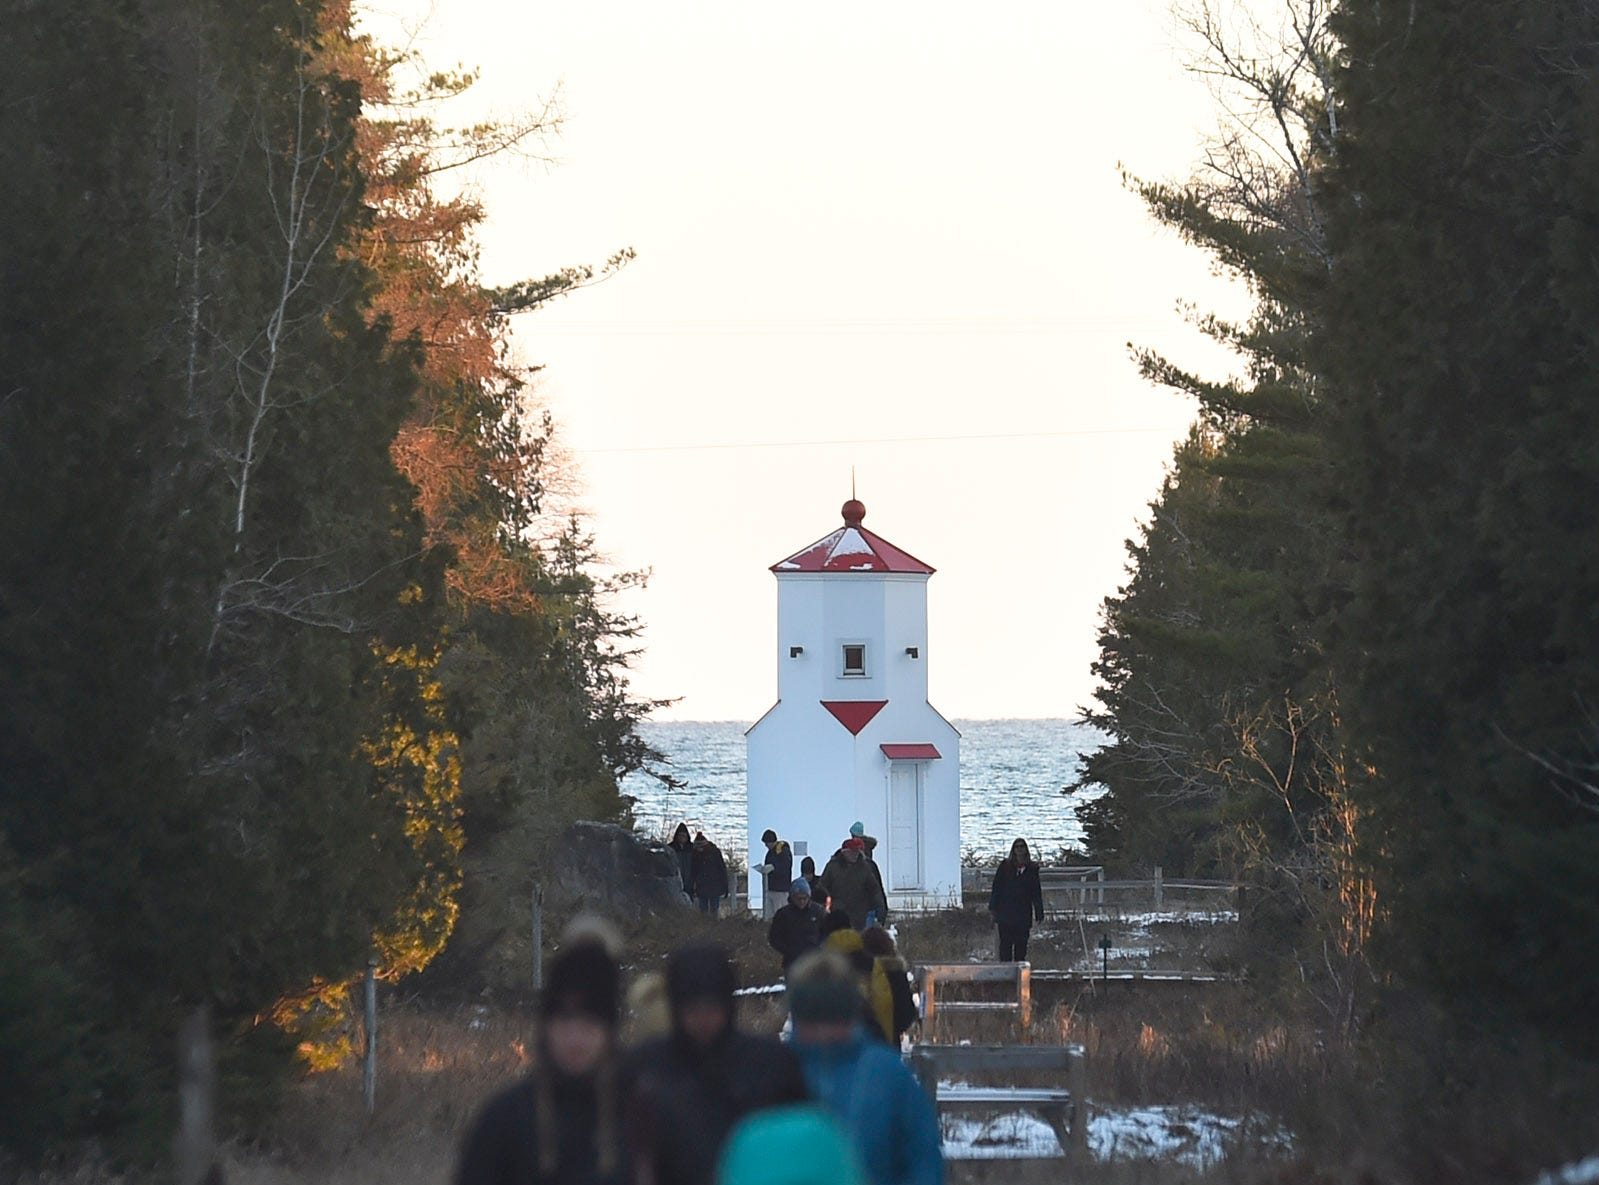 View of the lower Range Light from the upper light during Natural Christmas at The Ridges Sanctuary, Baileys Harbor, on Saturday, Dec. 8, 2018. Tina M. Gohr/USA TODAY NETWORK-Wisconsin